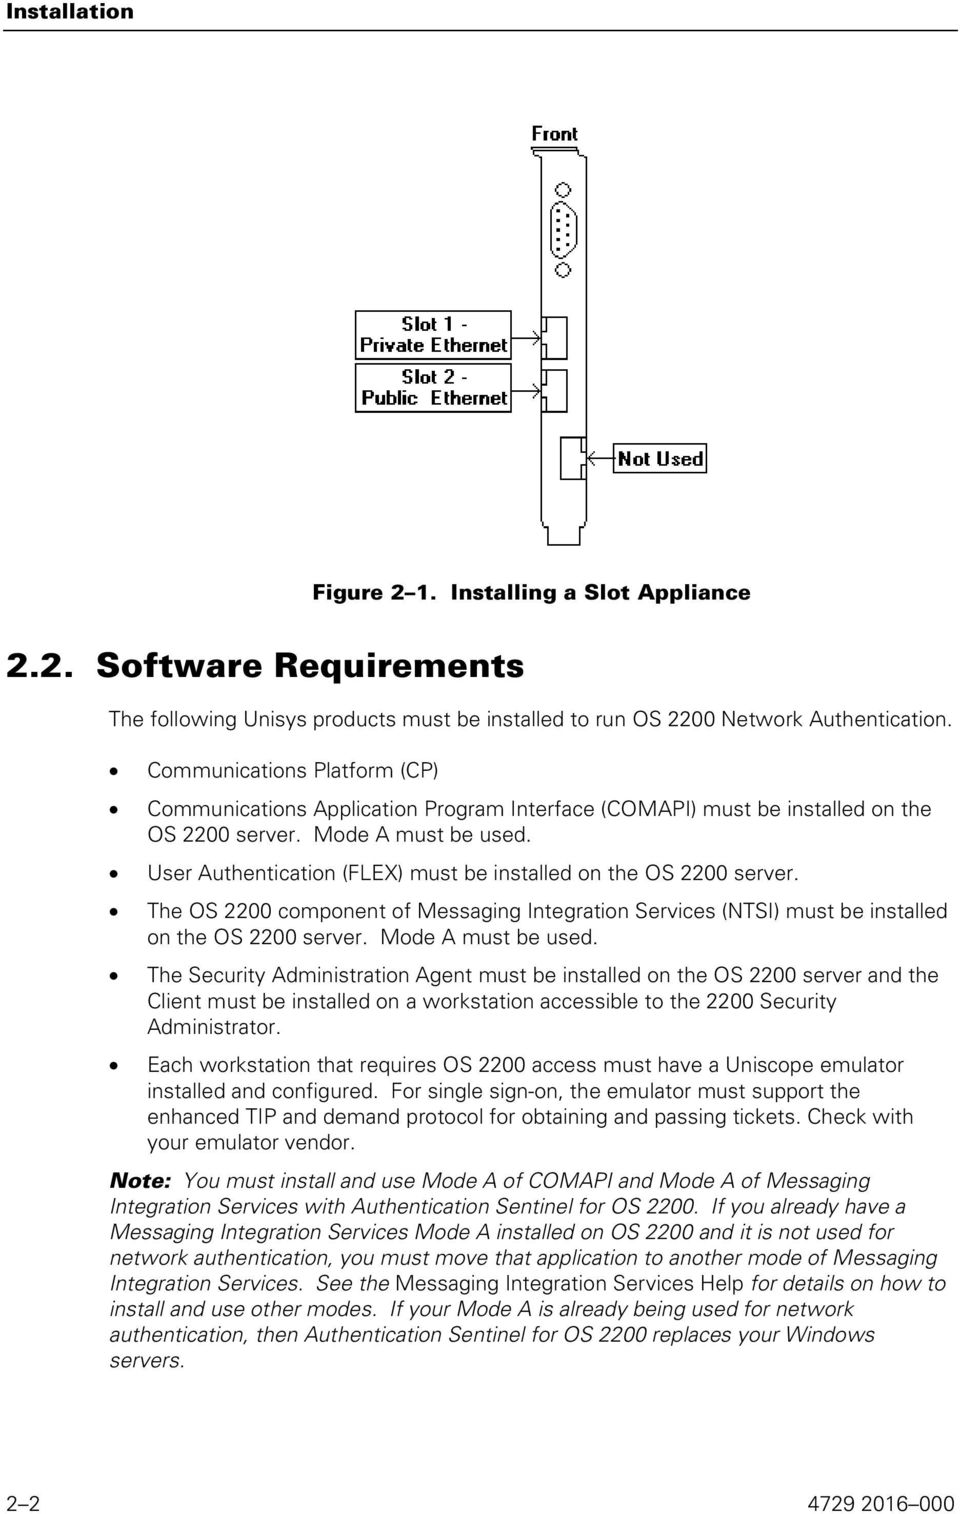 User Authentication (FLEX) must be installed on the OS 2200 server. The OS 2200 component of Messaging Integration Services (NTSI) must be installed on the OS 2200 server. Mode A must be used.